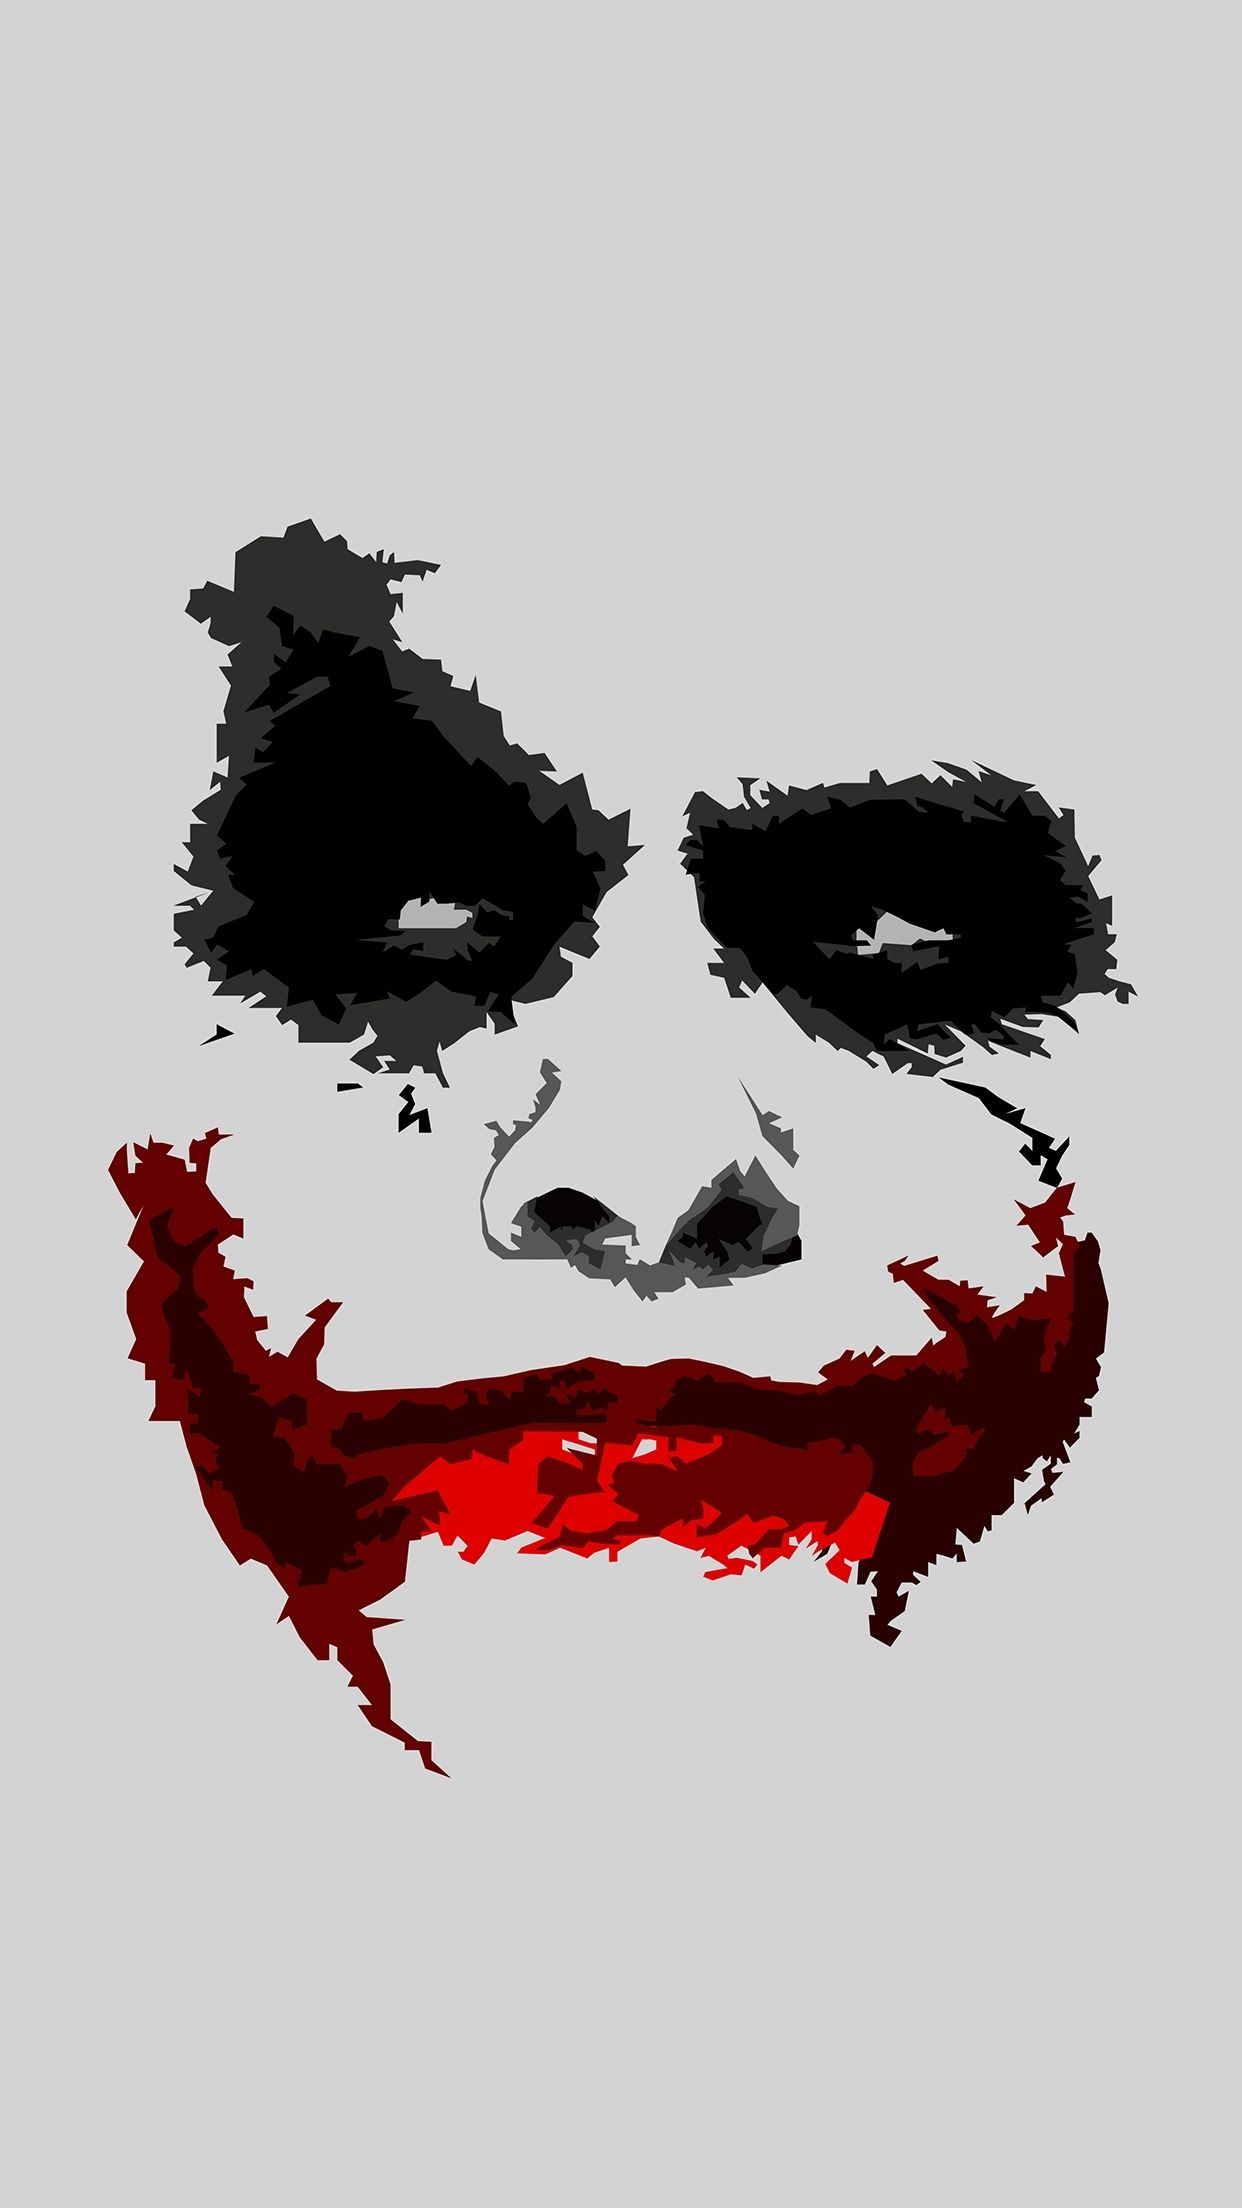 The joker iphone wallpaper hd download new the joker for Joker immagini hd